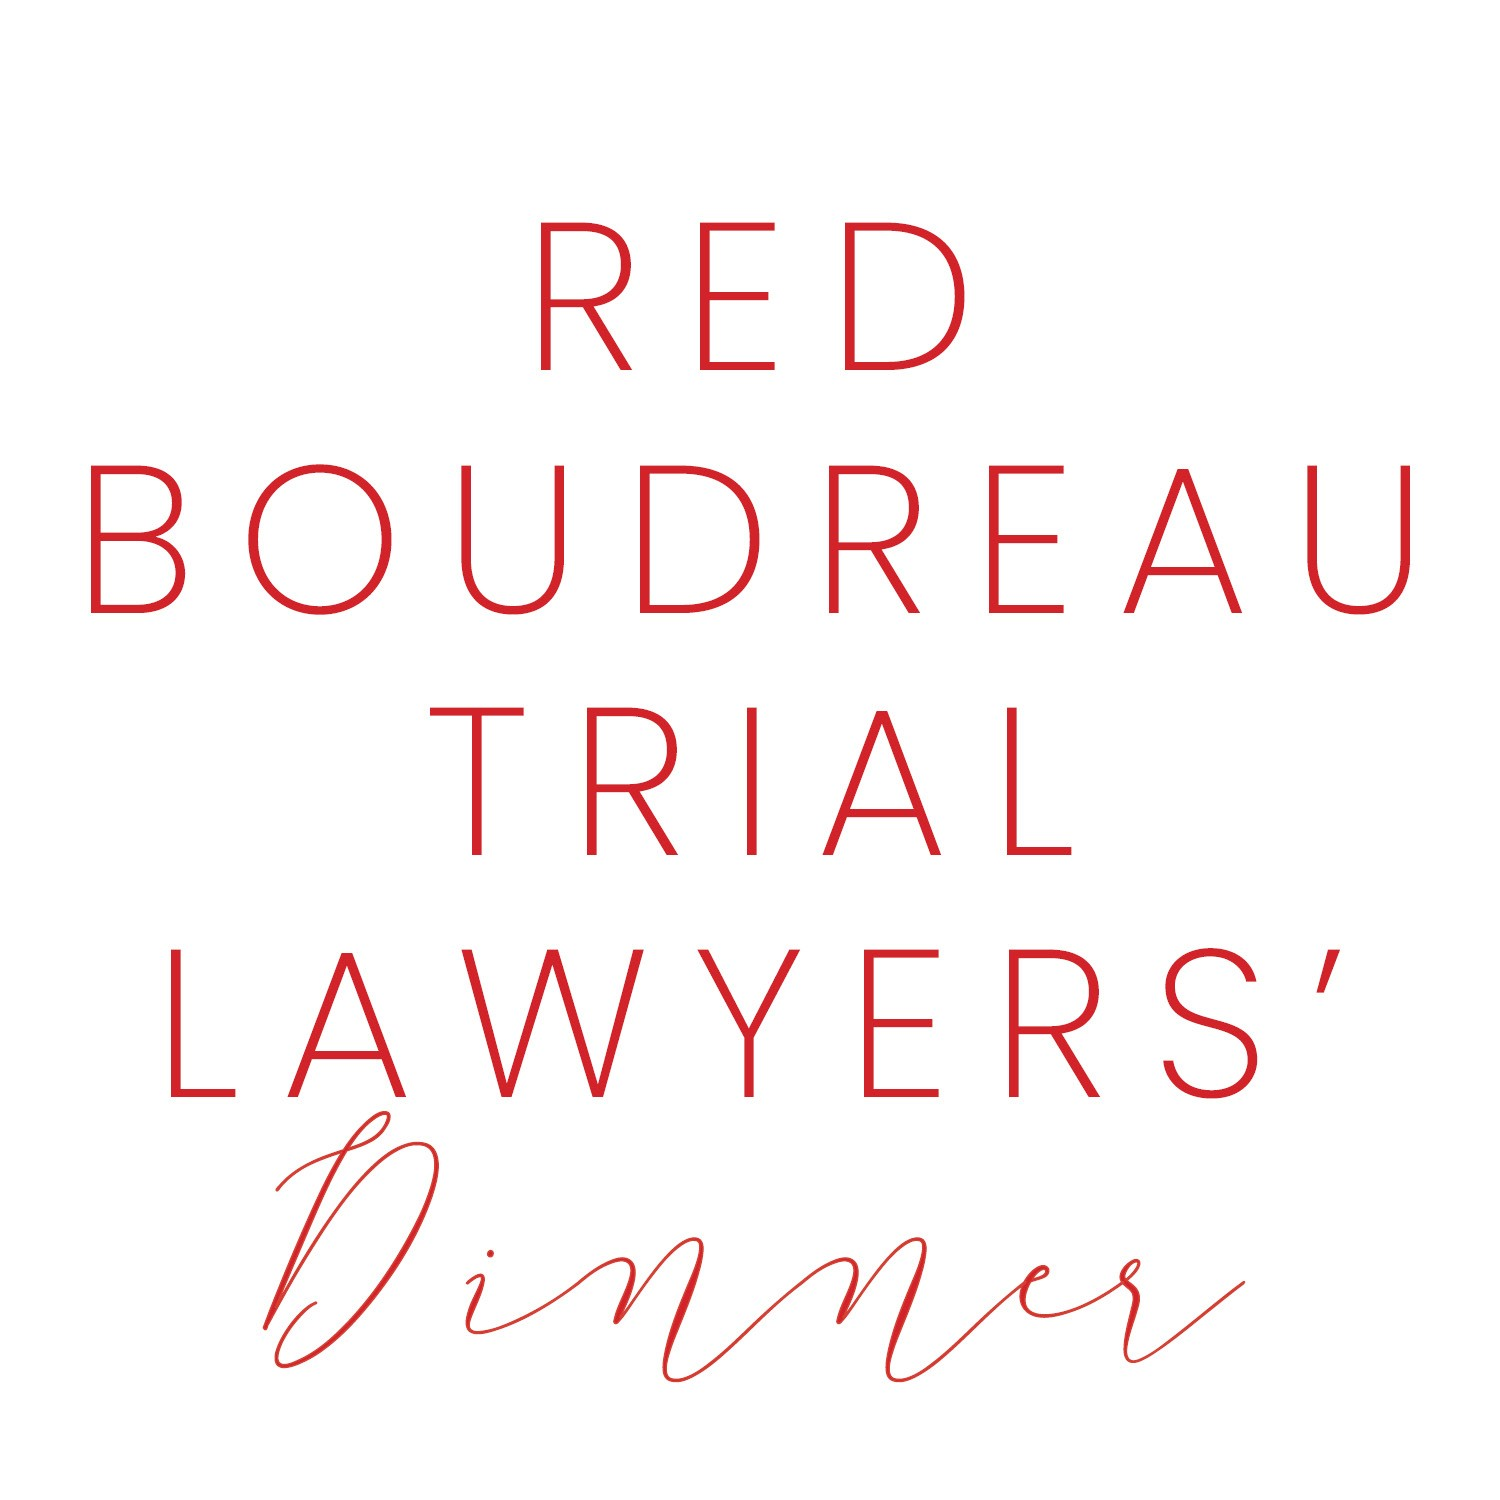 Red Boudreau Trial Lawyers' Dinner